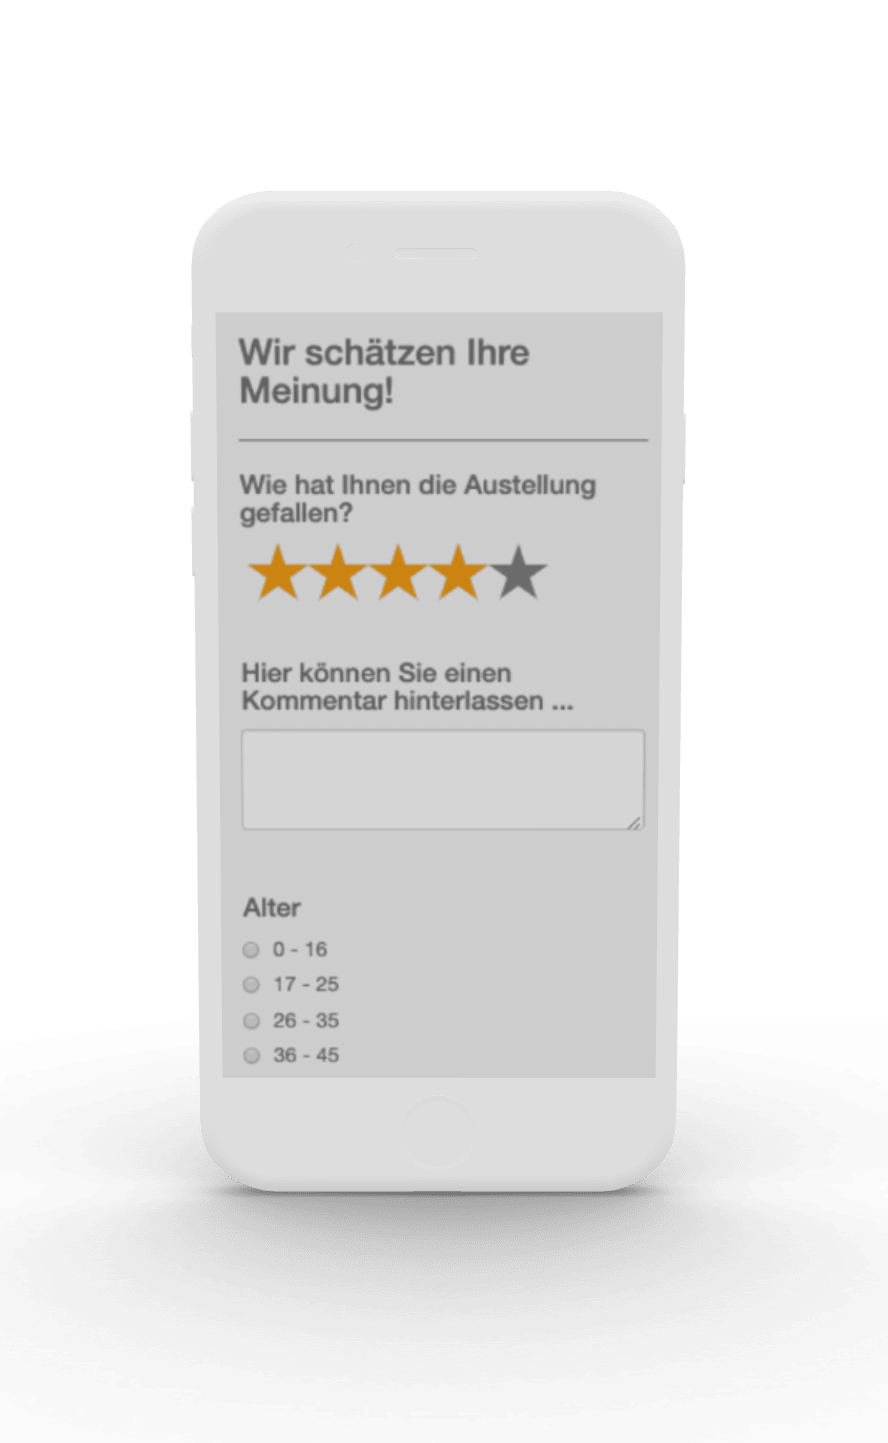 Feedback-Fragebogen in Nubart Audioguides